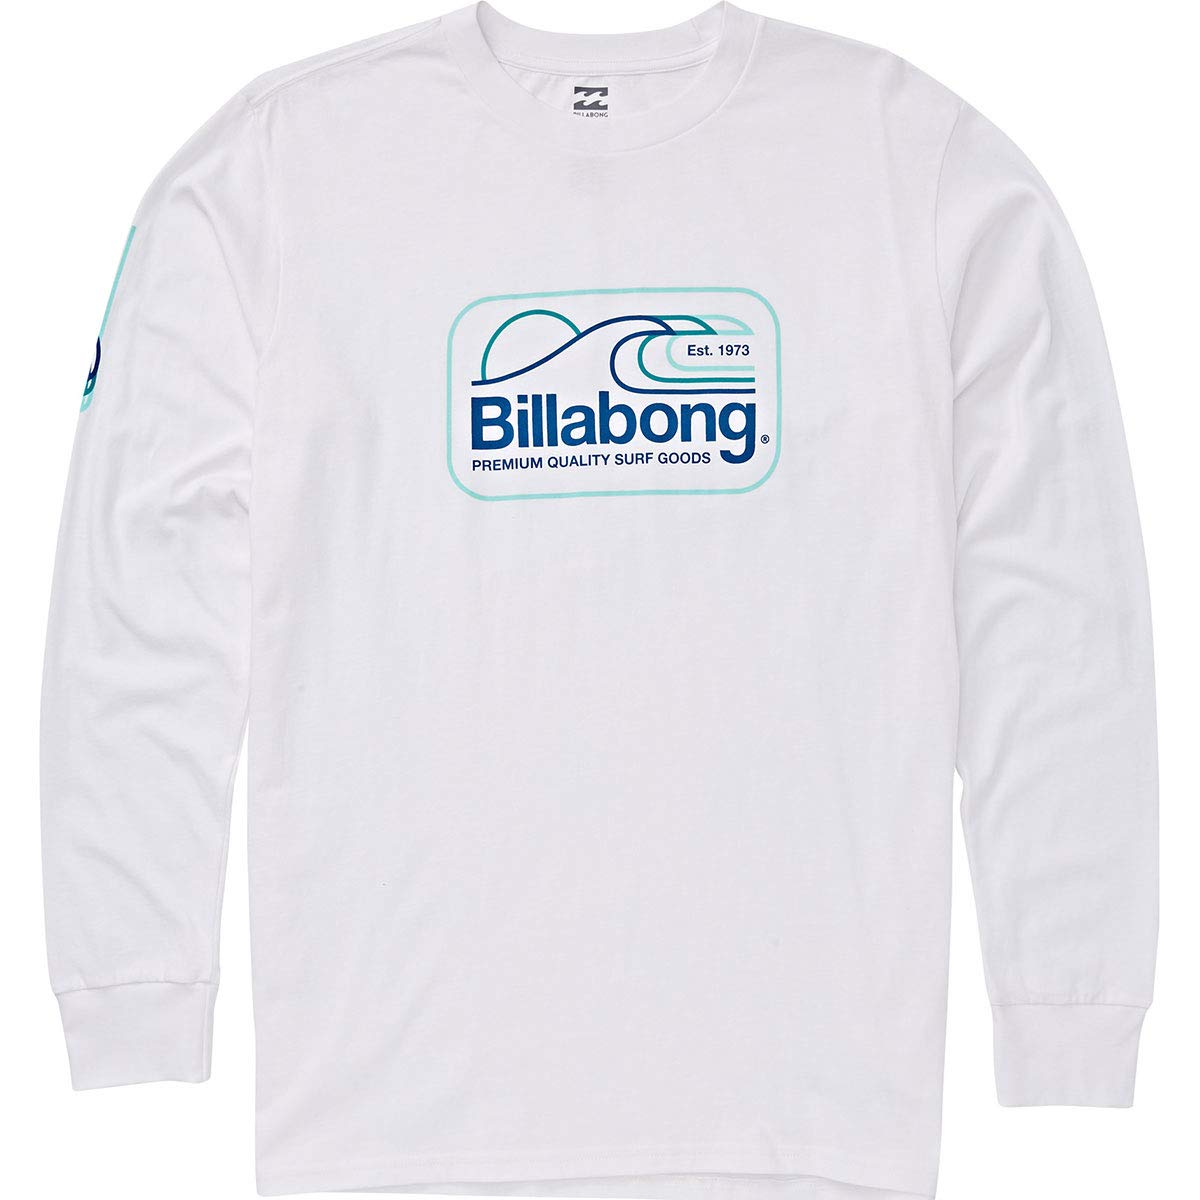 Billabong Mens Long Sleeve T-Shirt